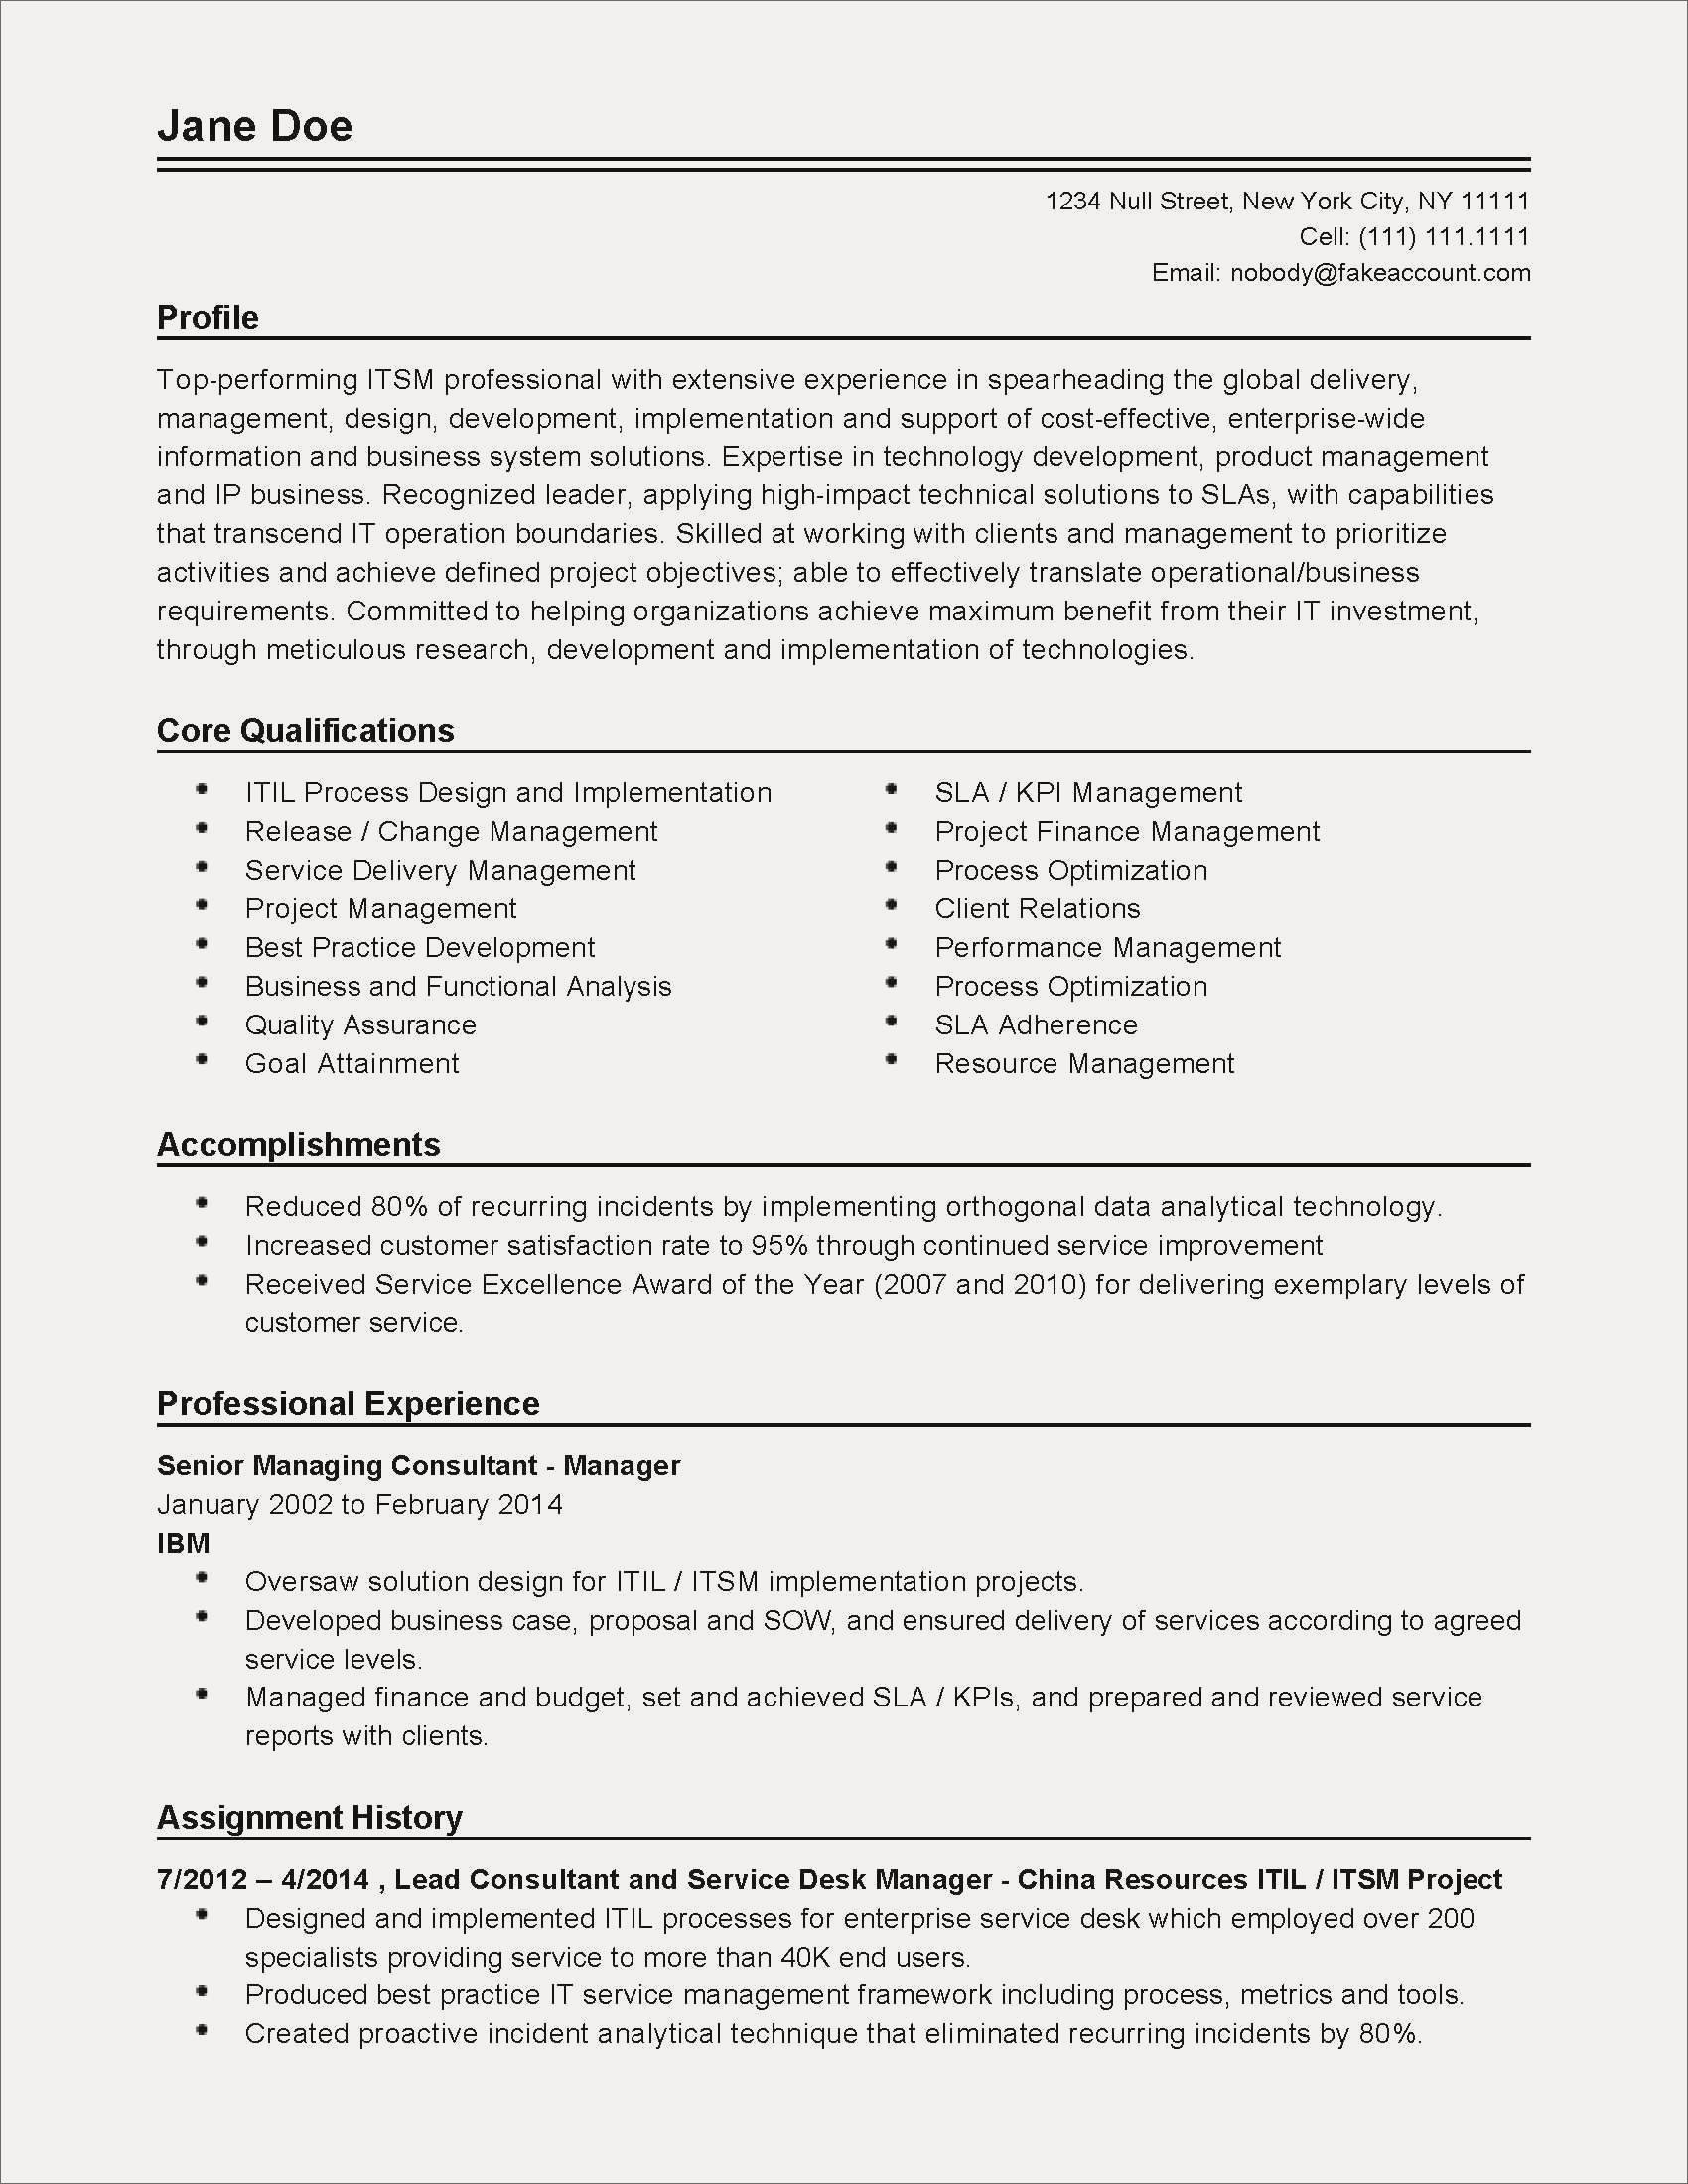 Job Application Blank Resume Template